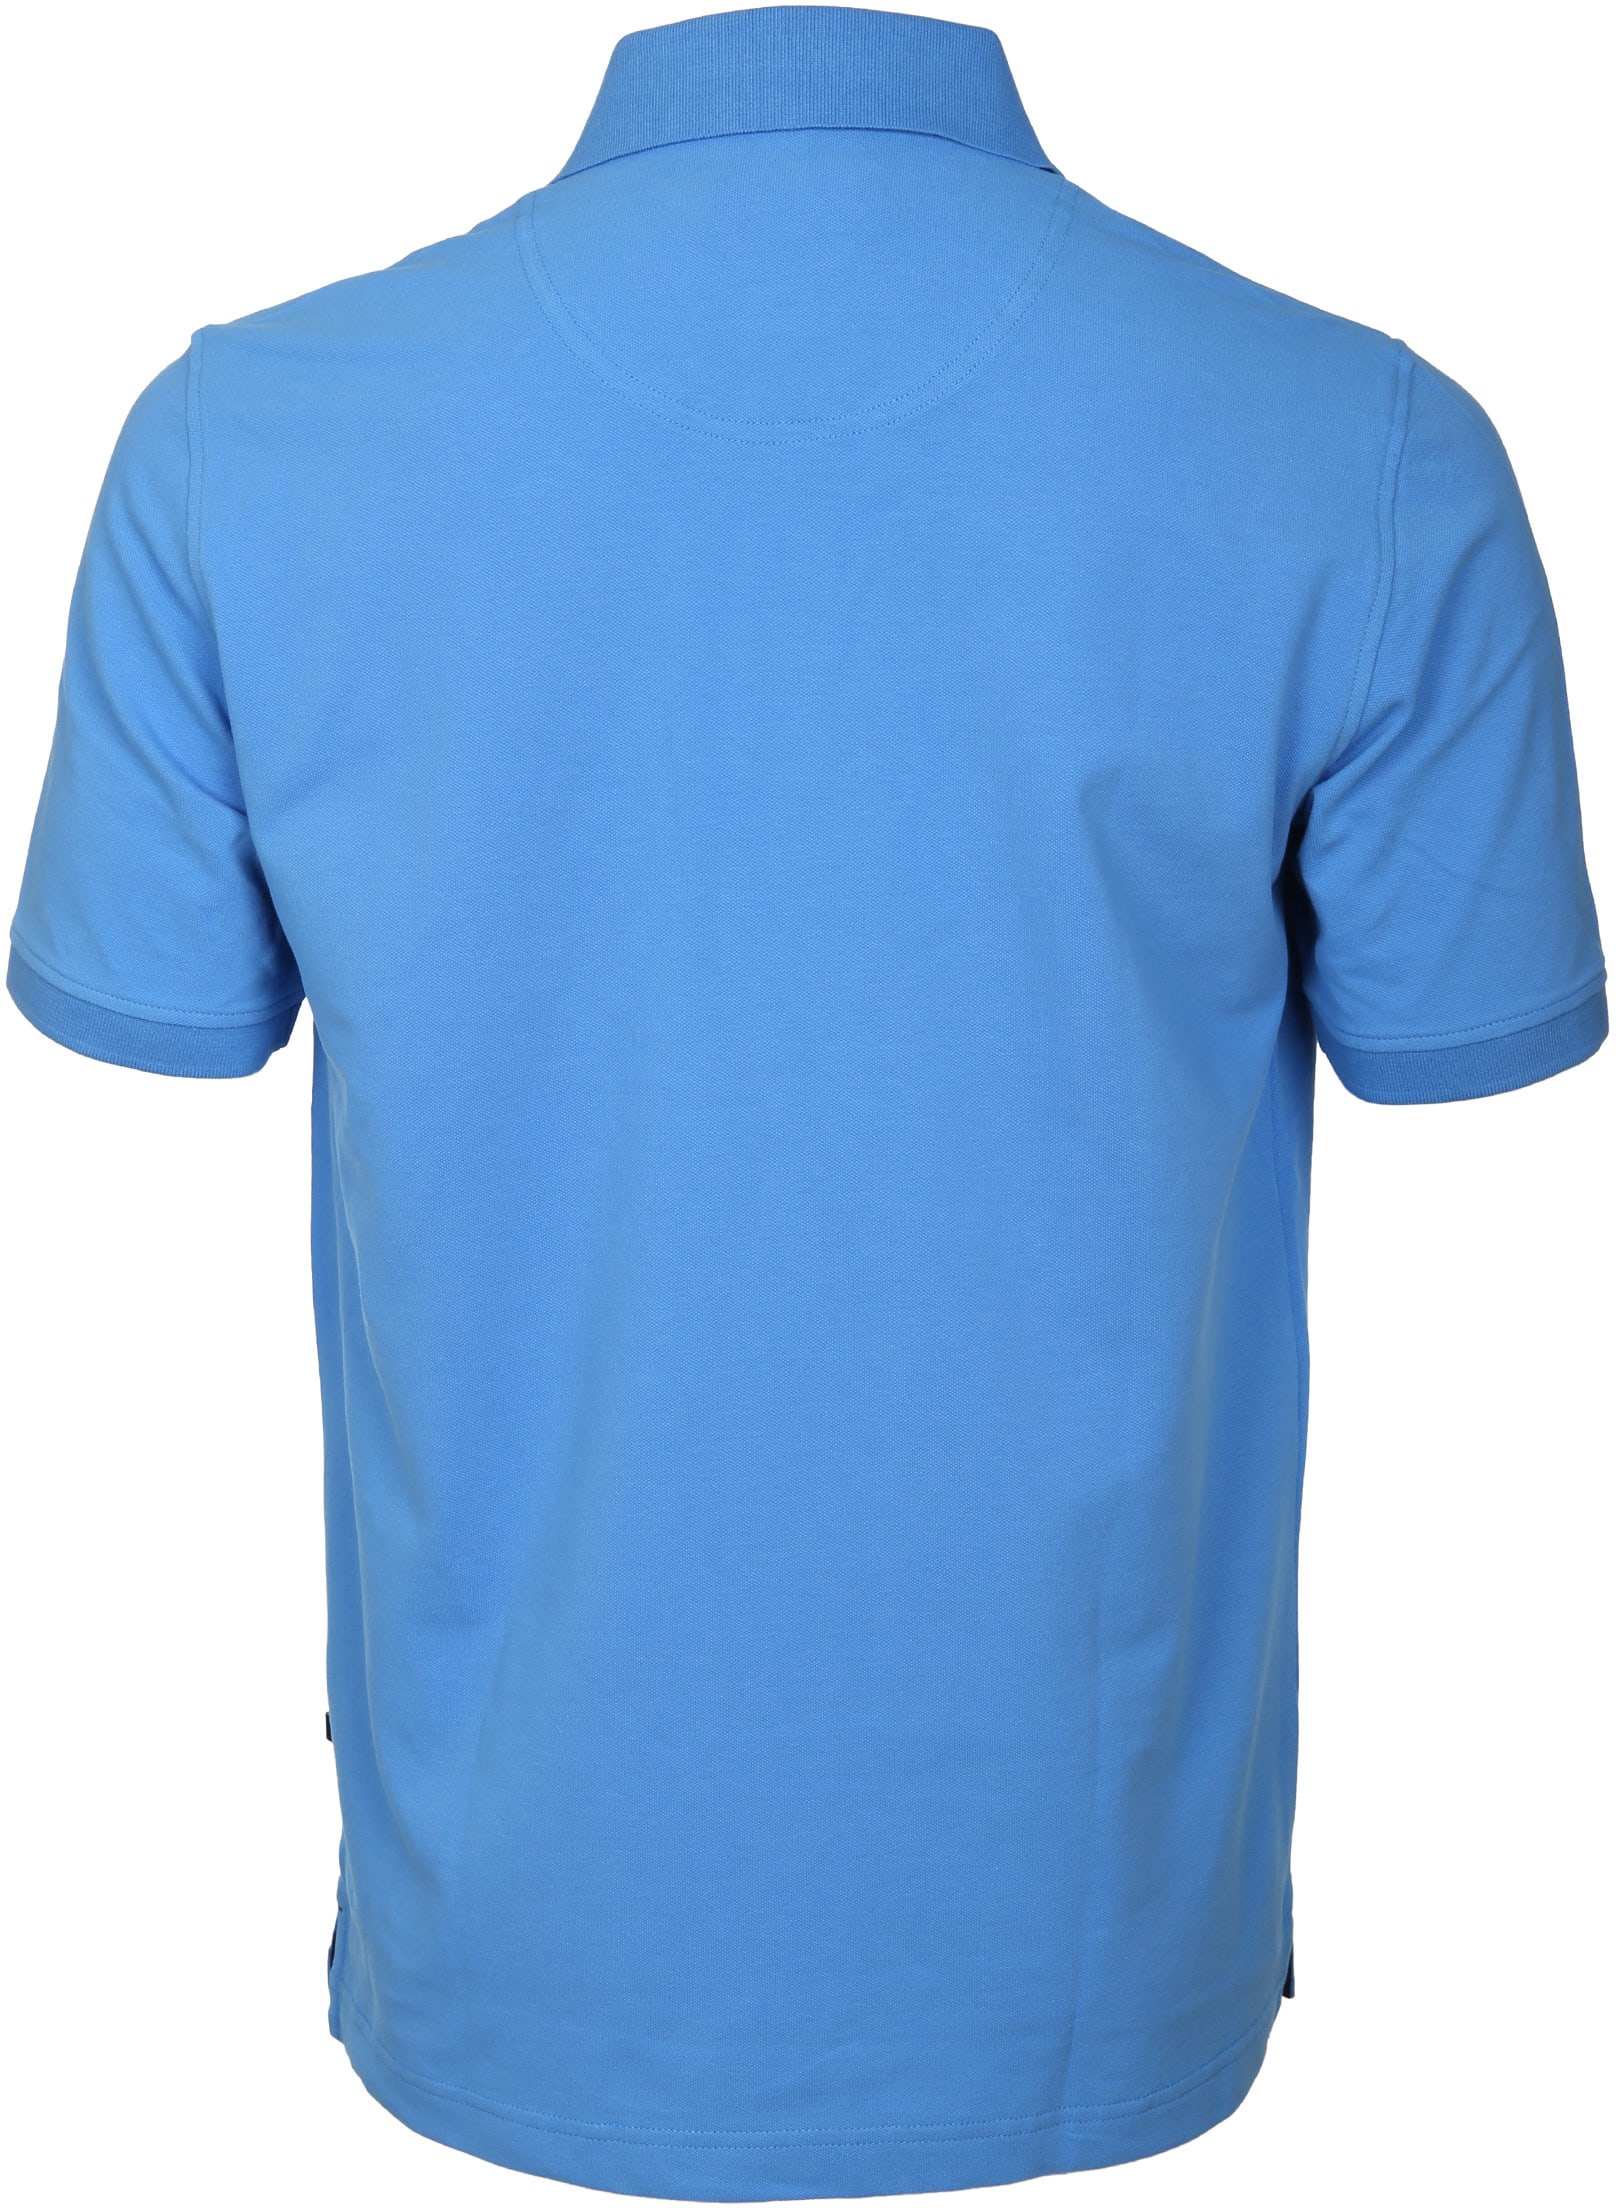 Suitable Polo Basic Blauw foto 4